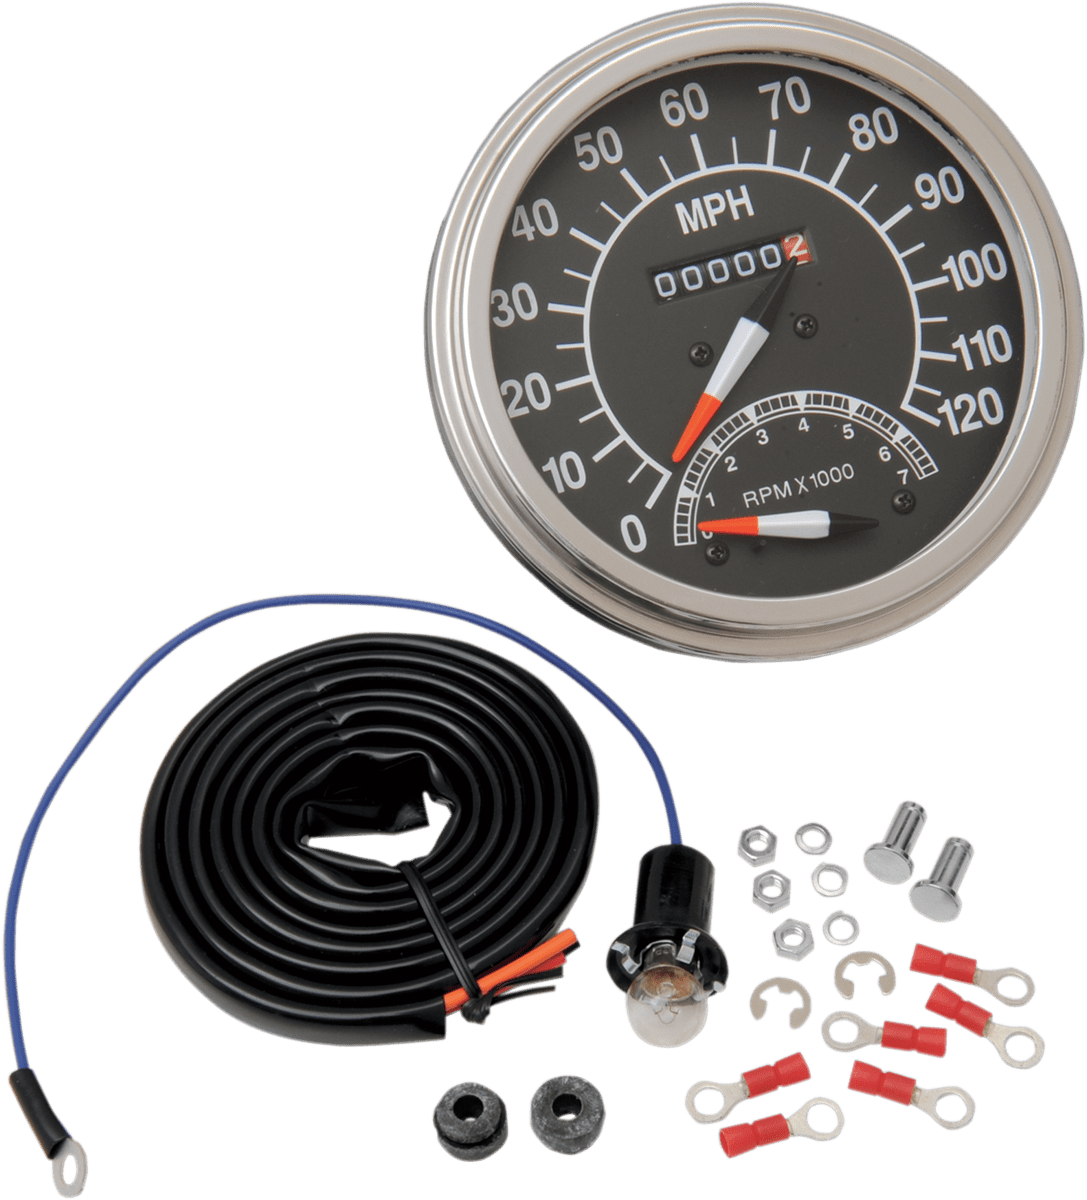 medium resolution of 79 jeep cj7 tach wiring diagram